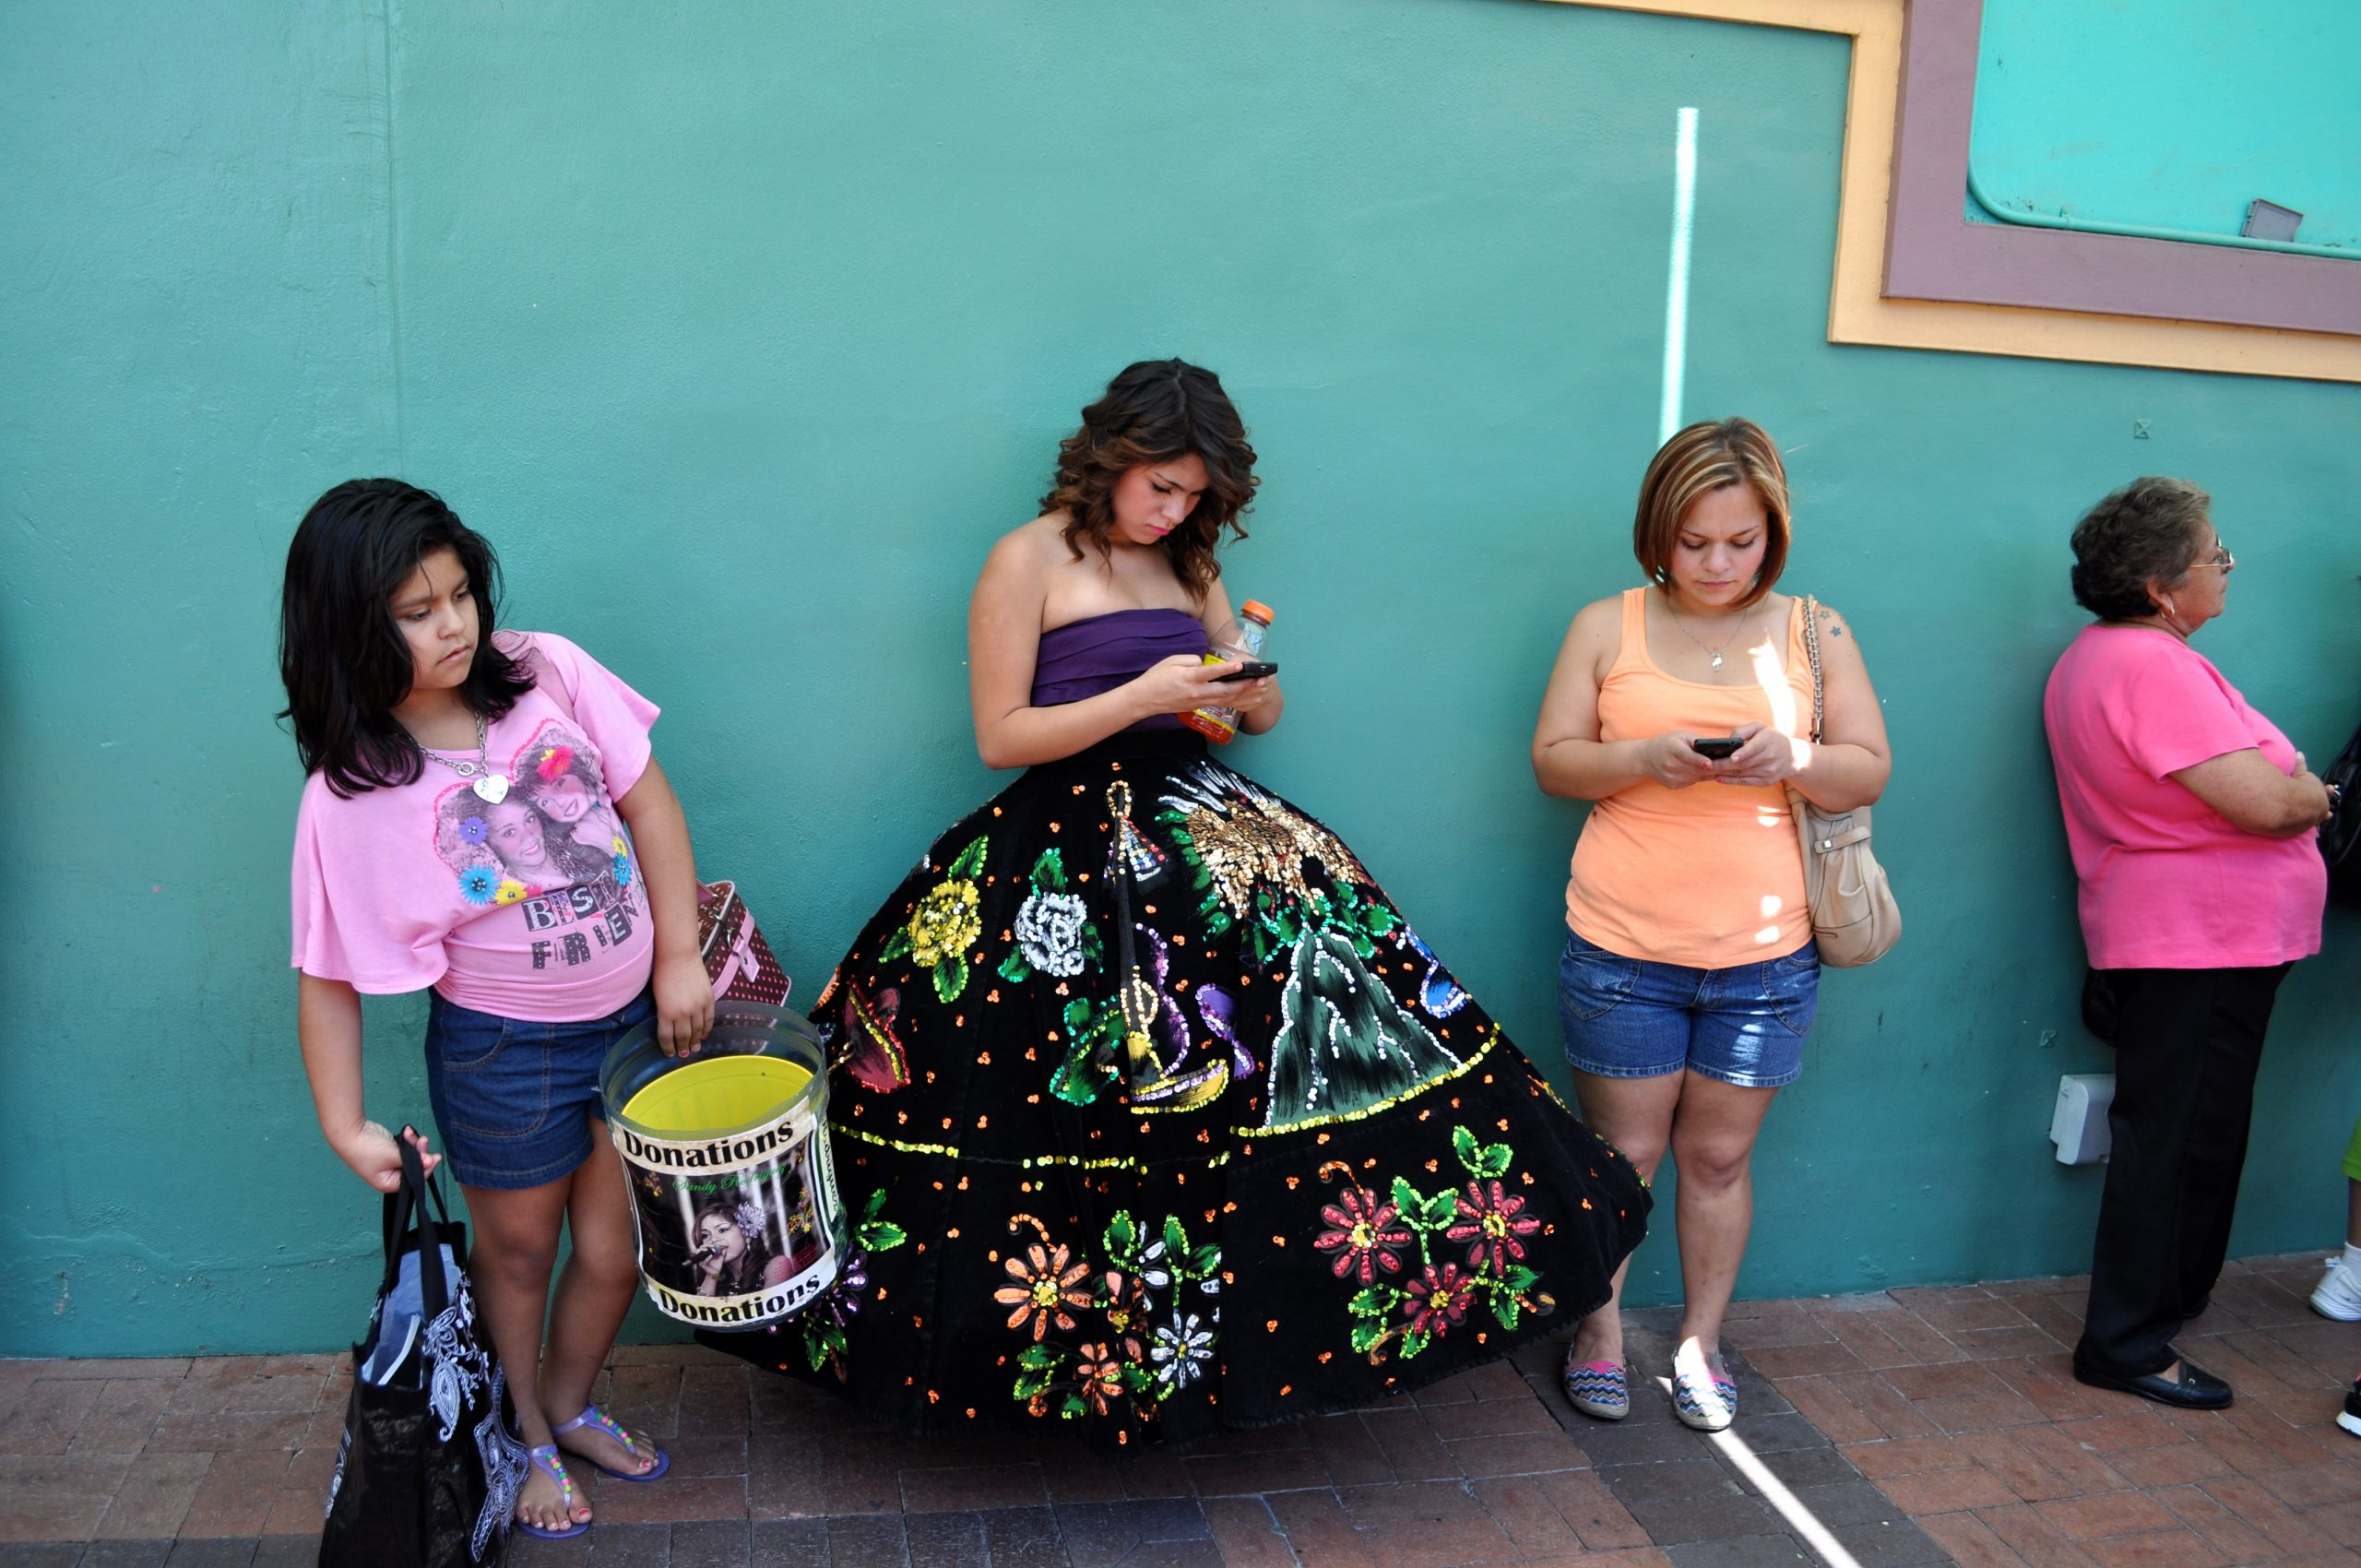 A young latina singer awaits her turn to sing at the 2013 Cinco De Mayo Celebrations in Market Square - El Mercado. Photo by Iris Dimmick.